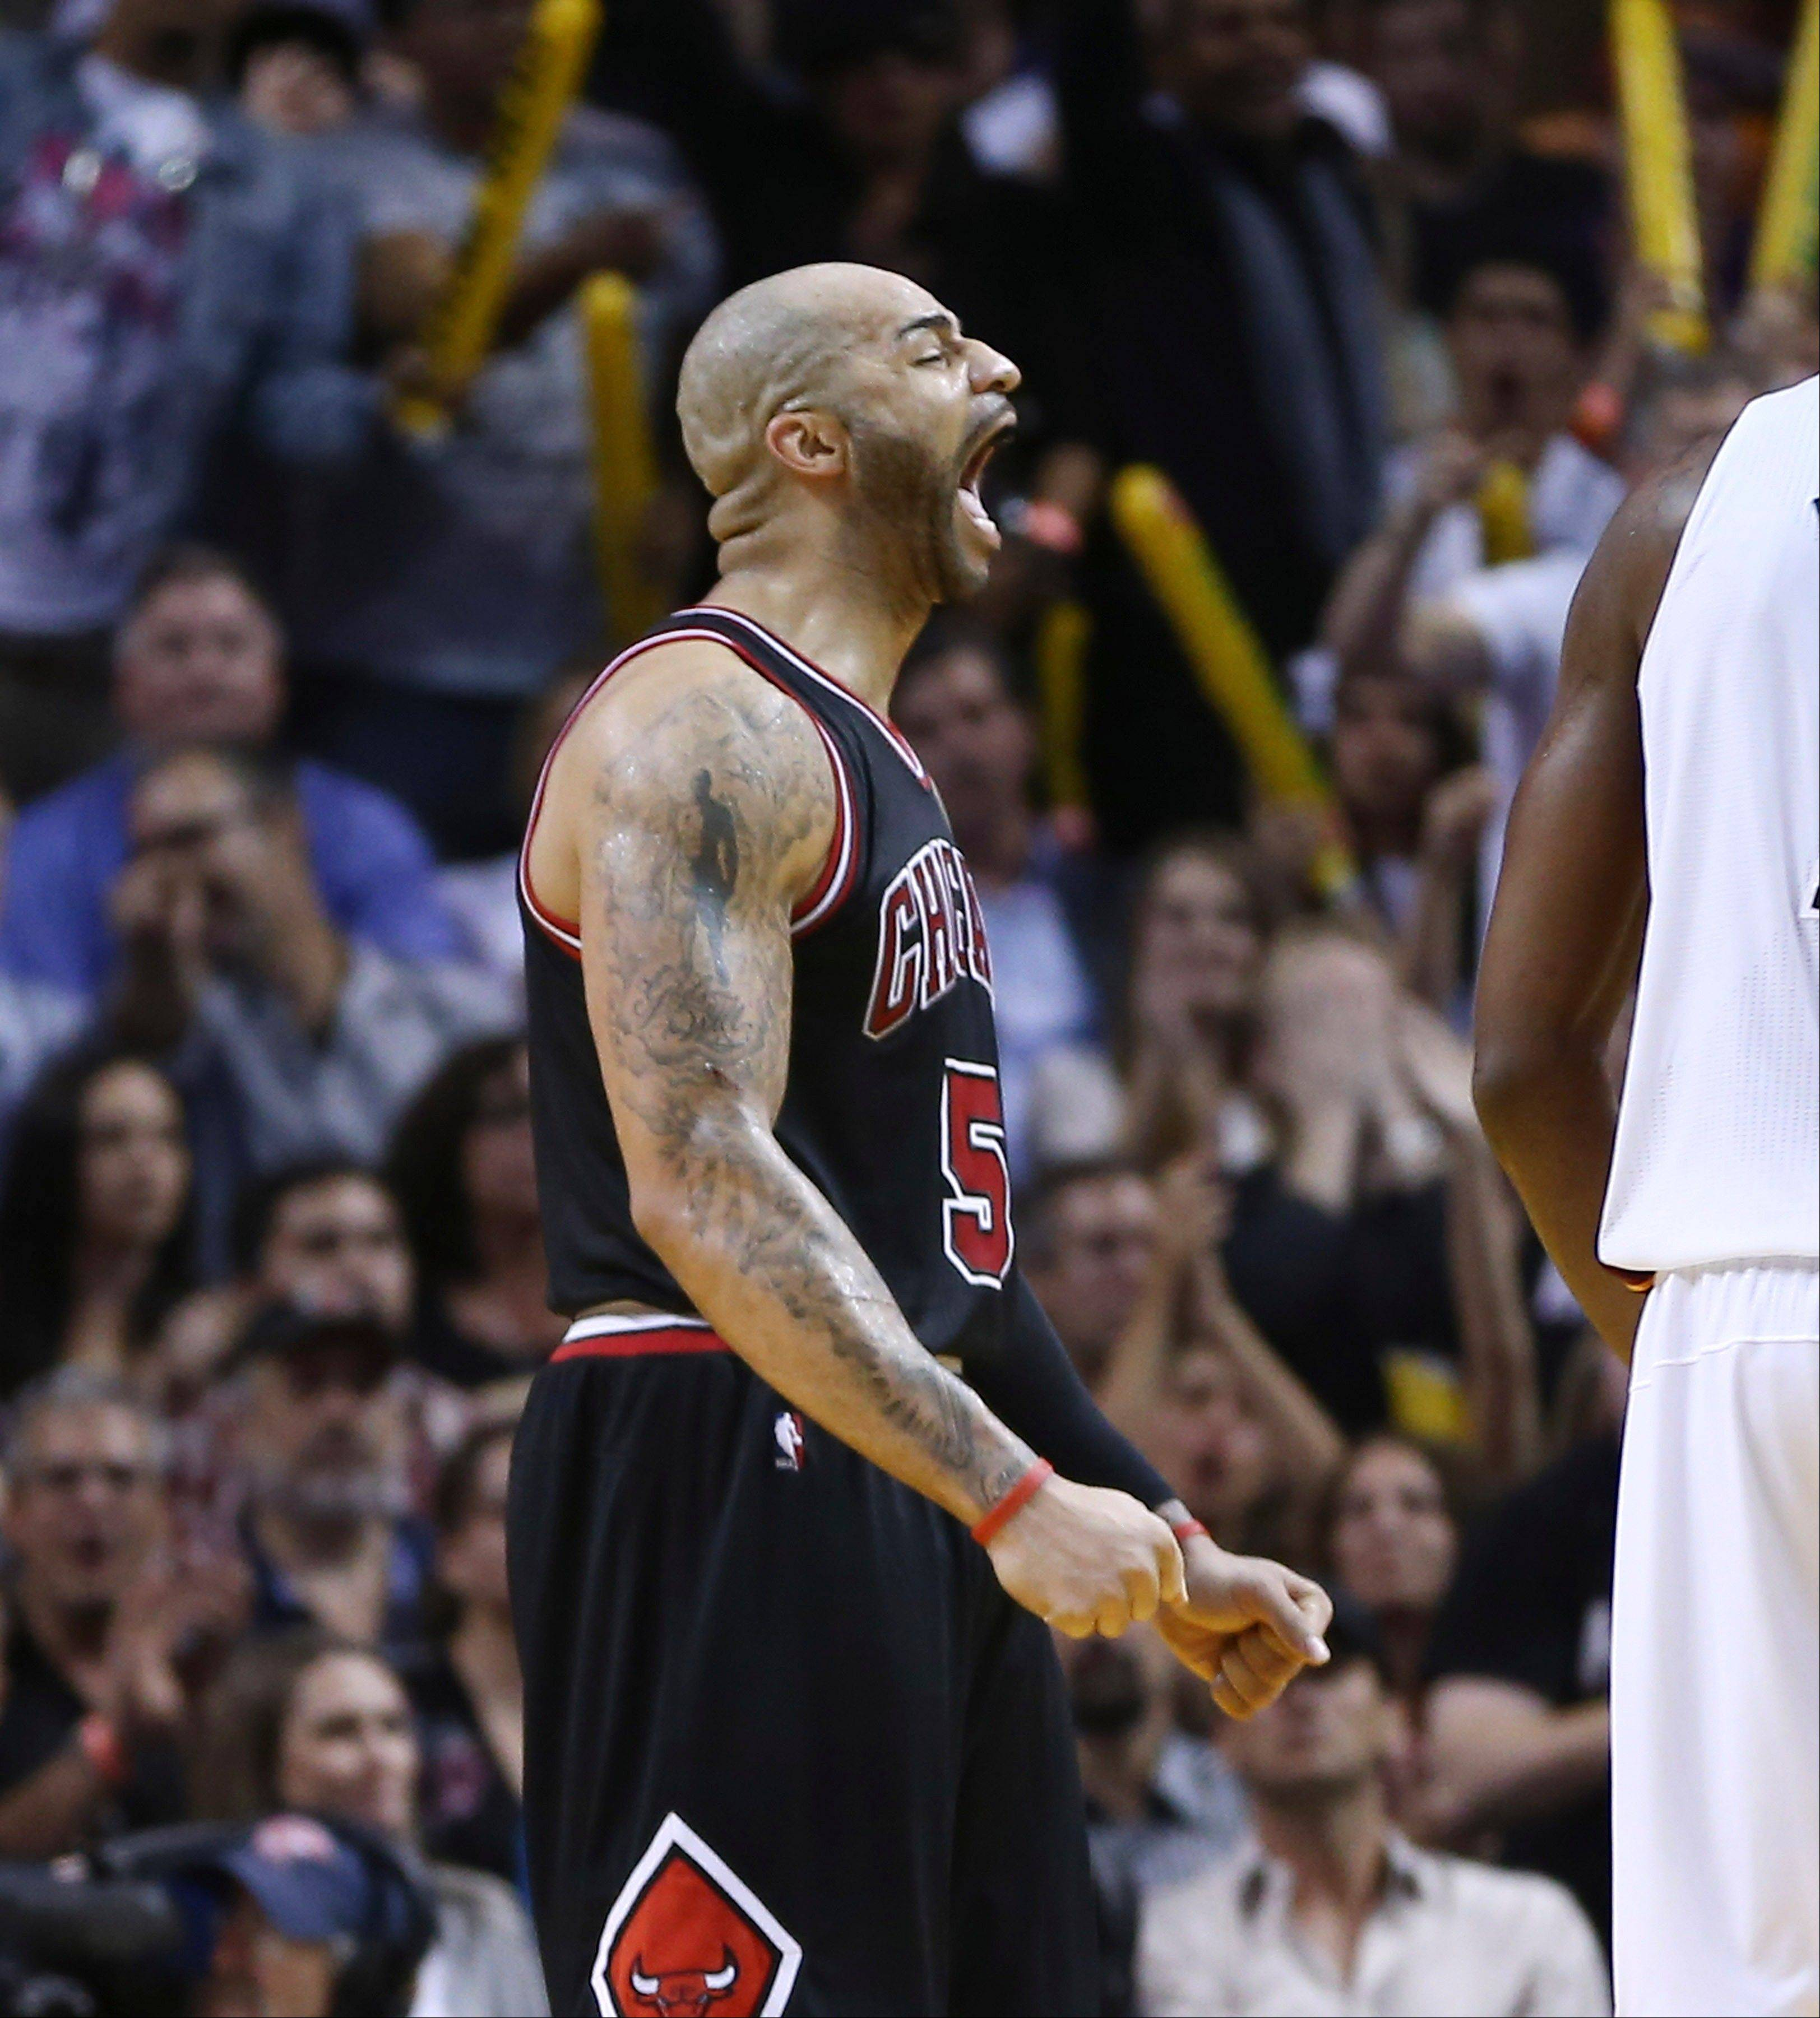 Chicago Bulls player Carlos Boozer reacts after the Miami Heat were charged with an offensive foul during the second half of an NBA basketball game in Miami, Friday, Jan. 4, 2013. The Bulls won 96-89.